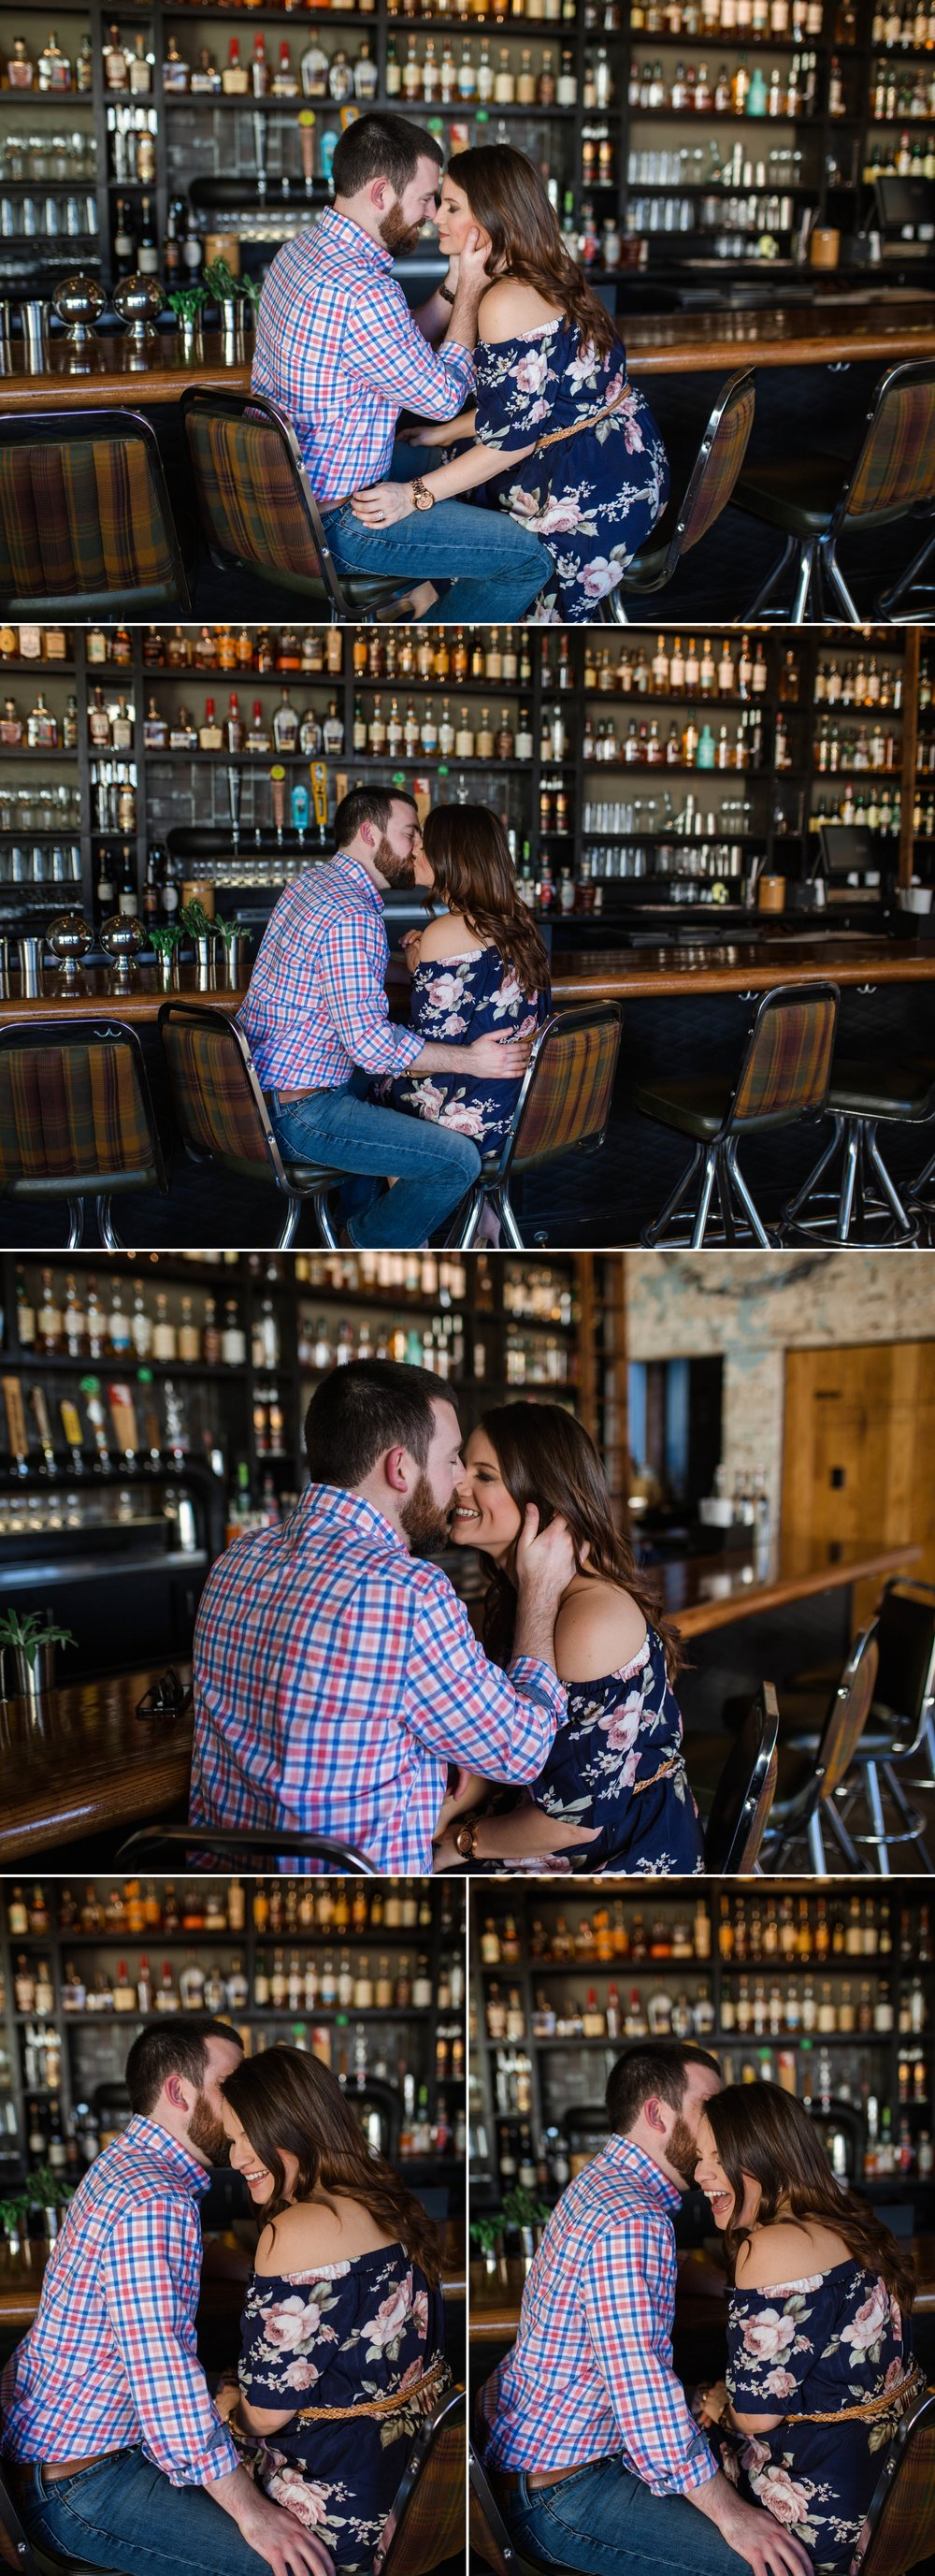 Recreate the first date for the Engagement Photography Session at Dram and Draught - Raleigh NC Wedding Photographer